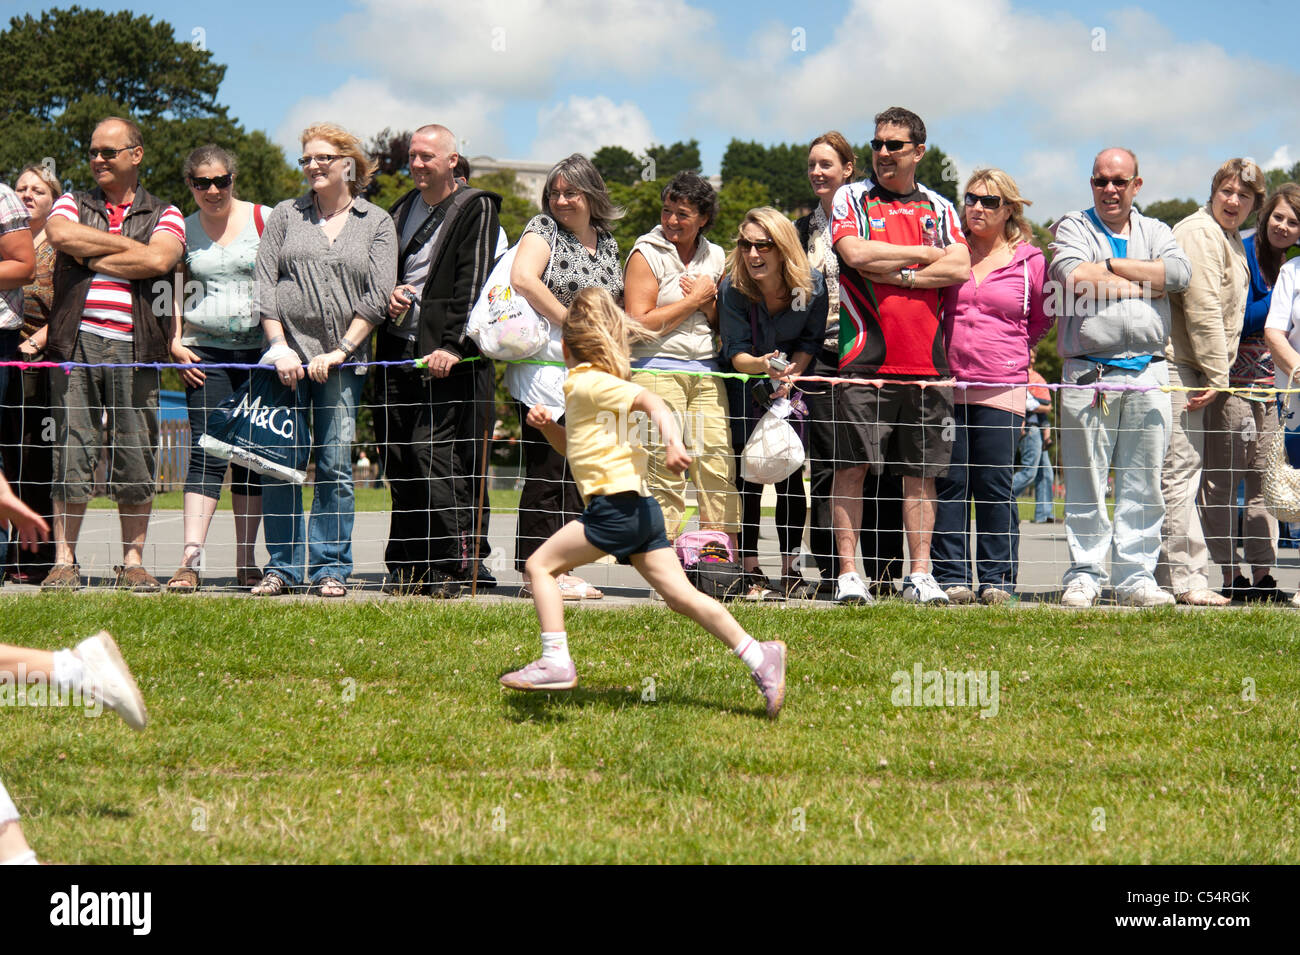 Parents watching their children compete at the annual School sports day at a small primary school, UK - Stock Image